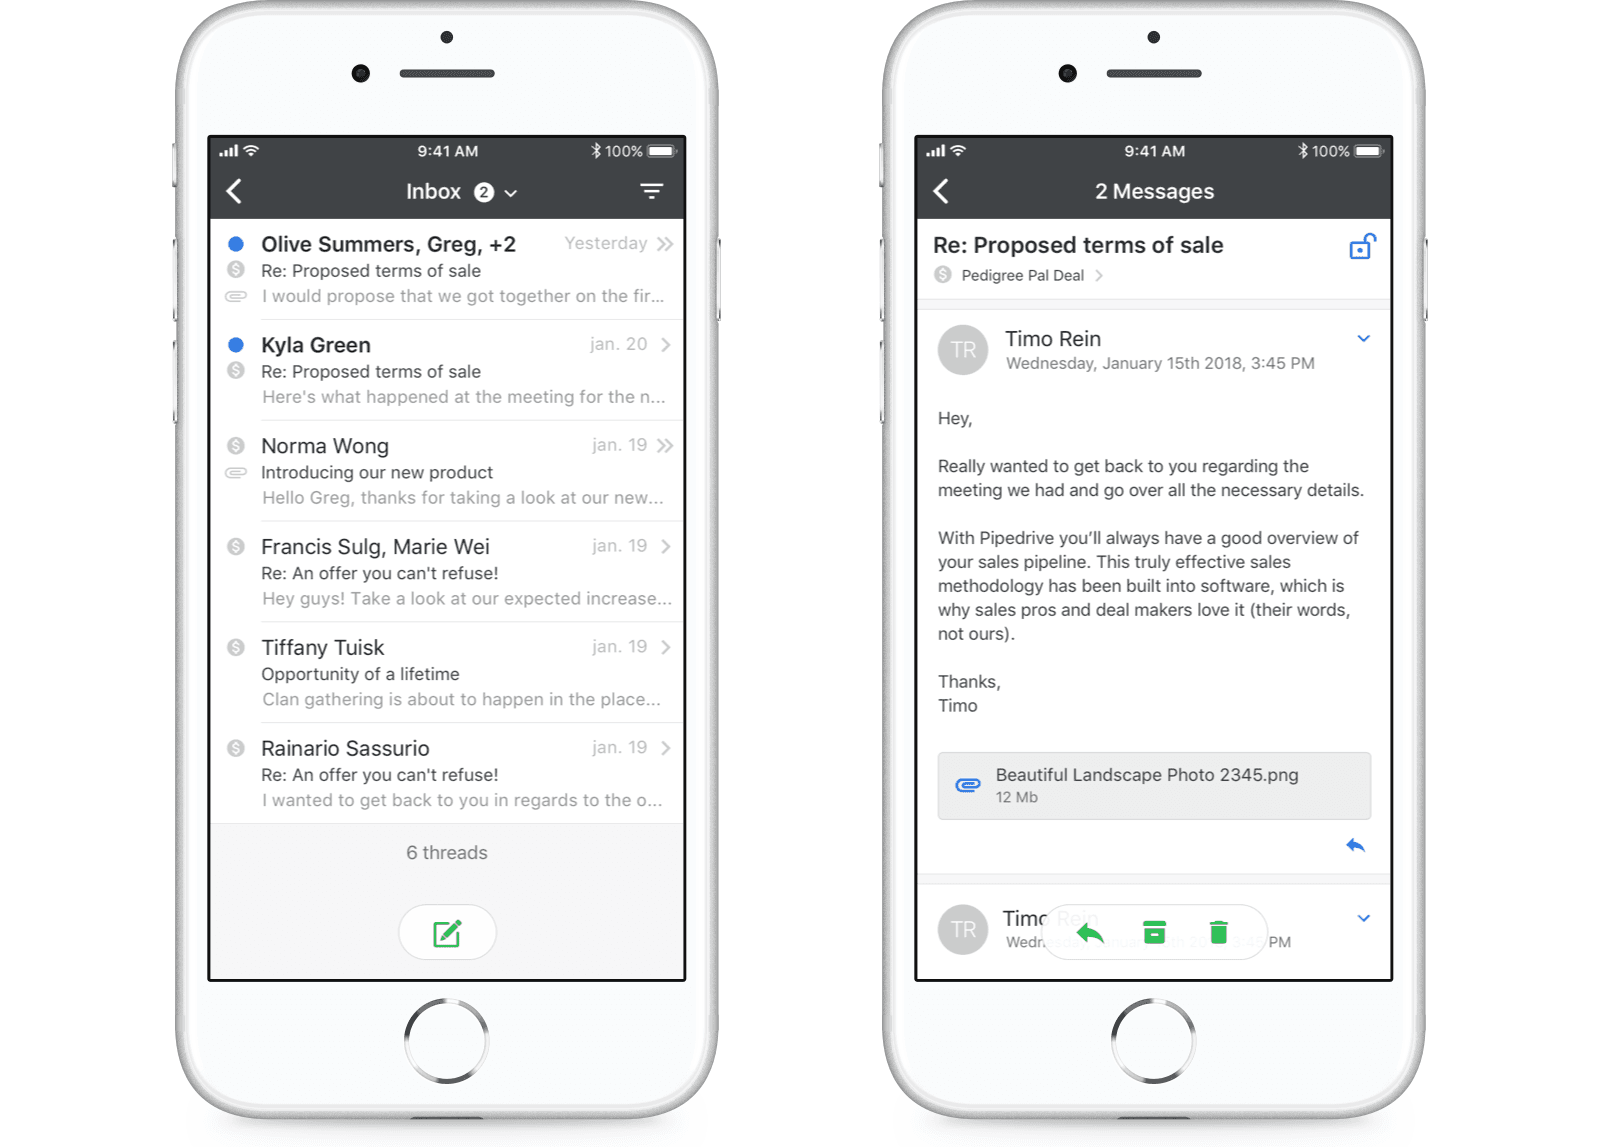 Pipedrivers can now view Mail directly in the iOS app